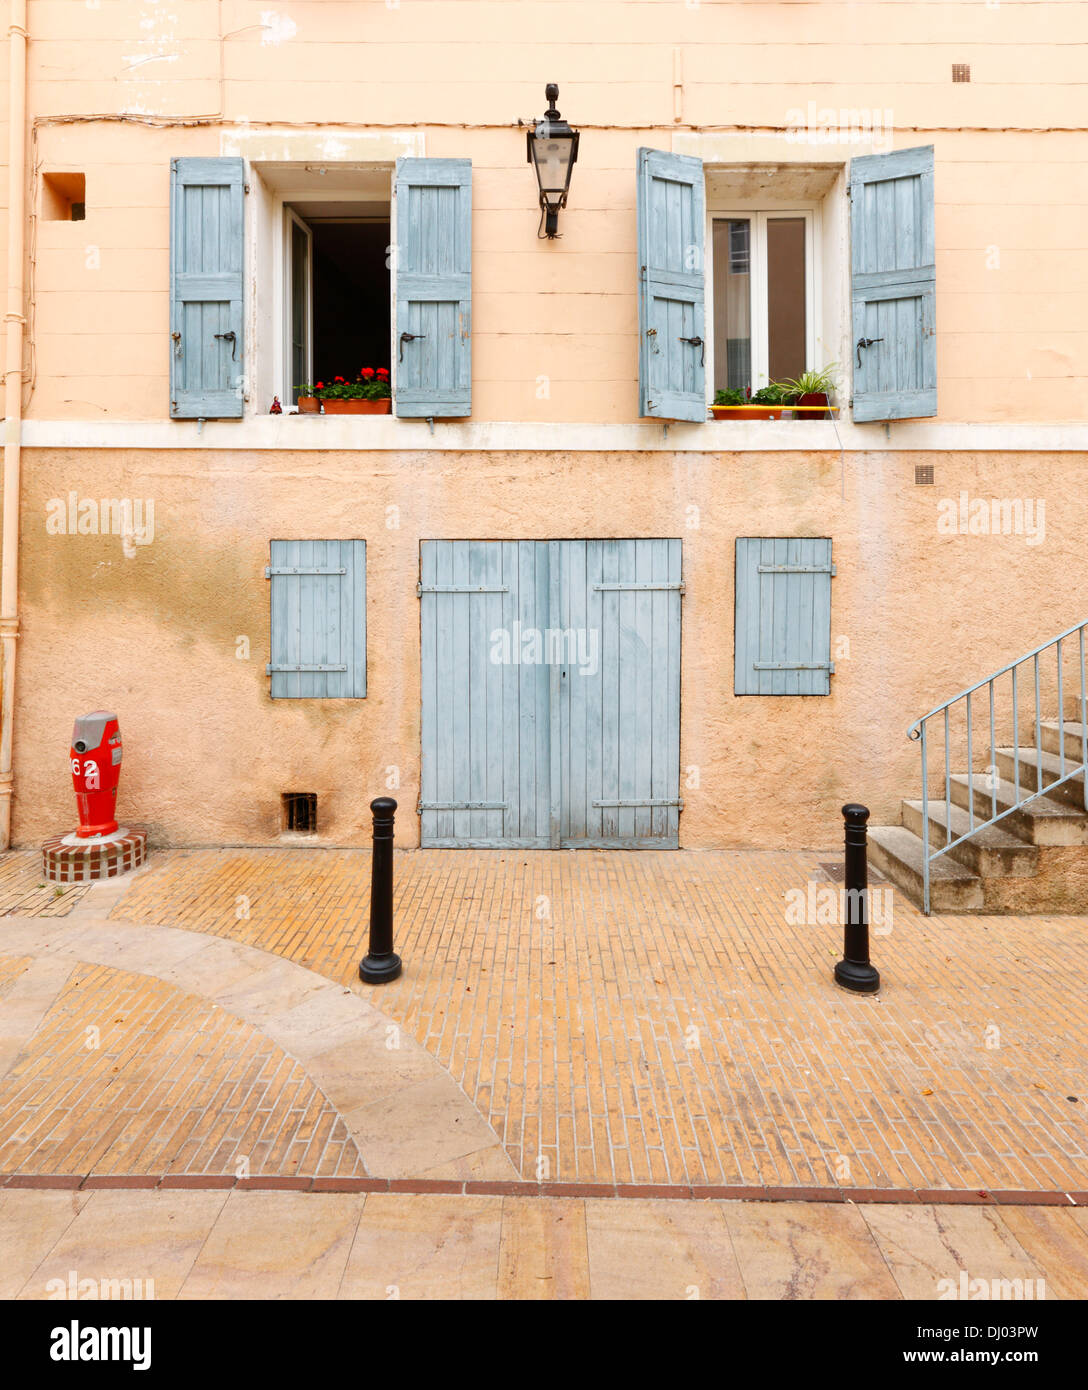 Old facade building in Manosque, France - Stock Image